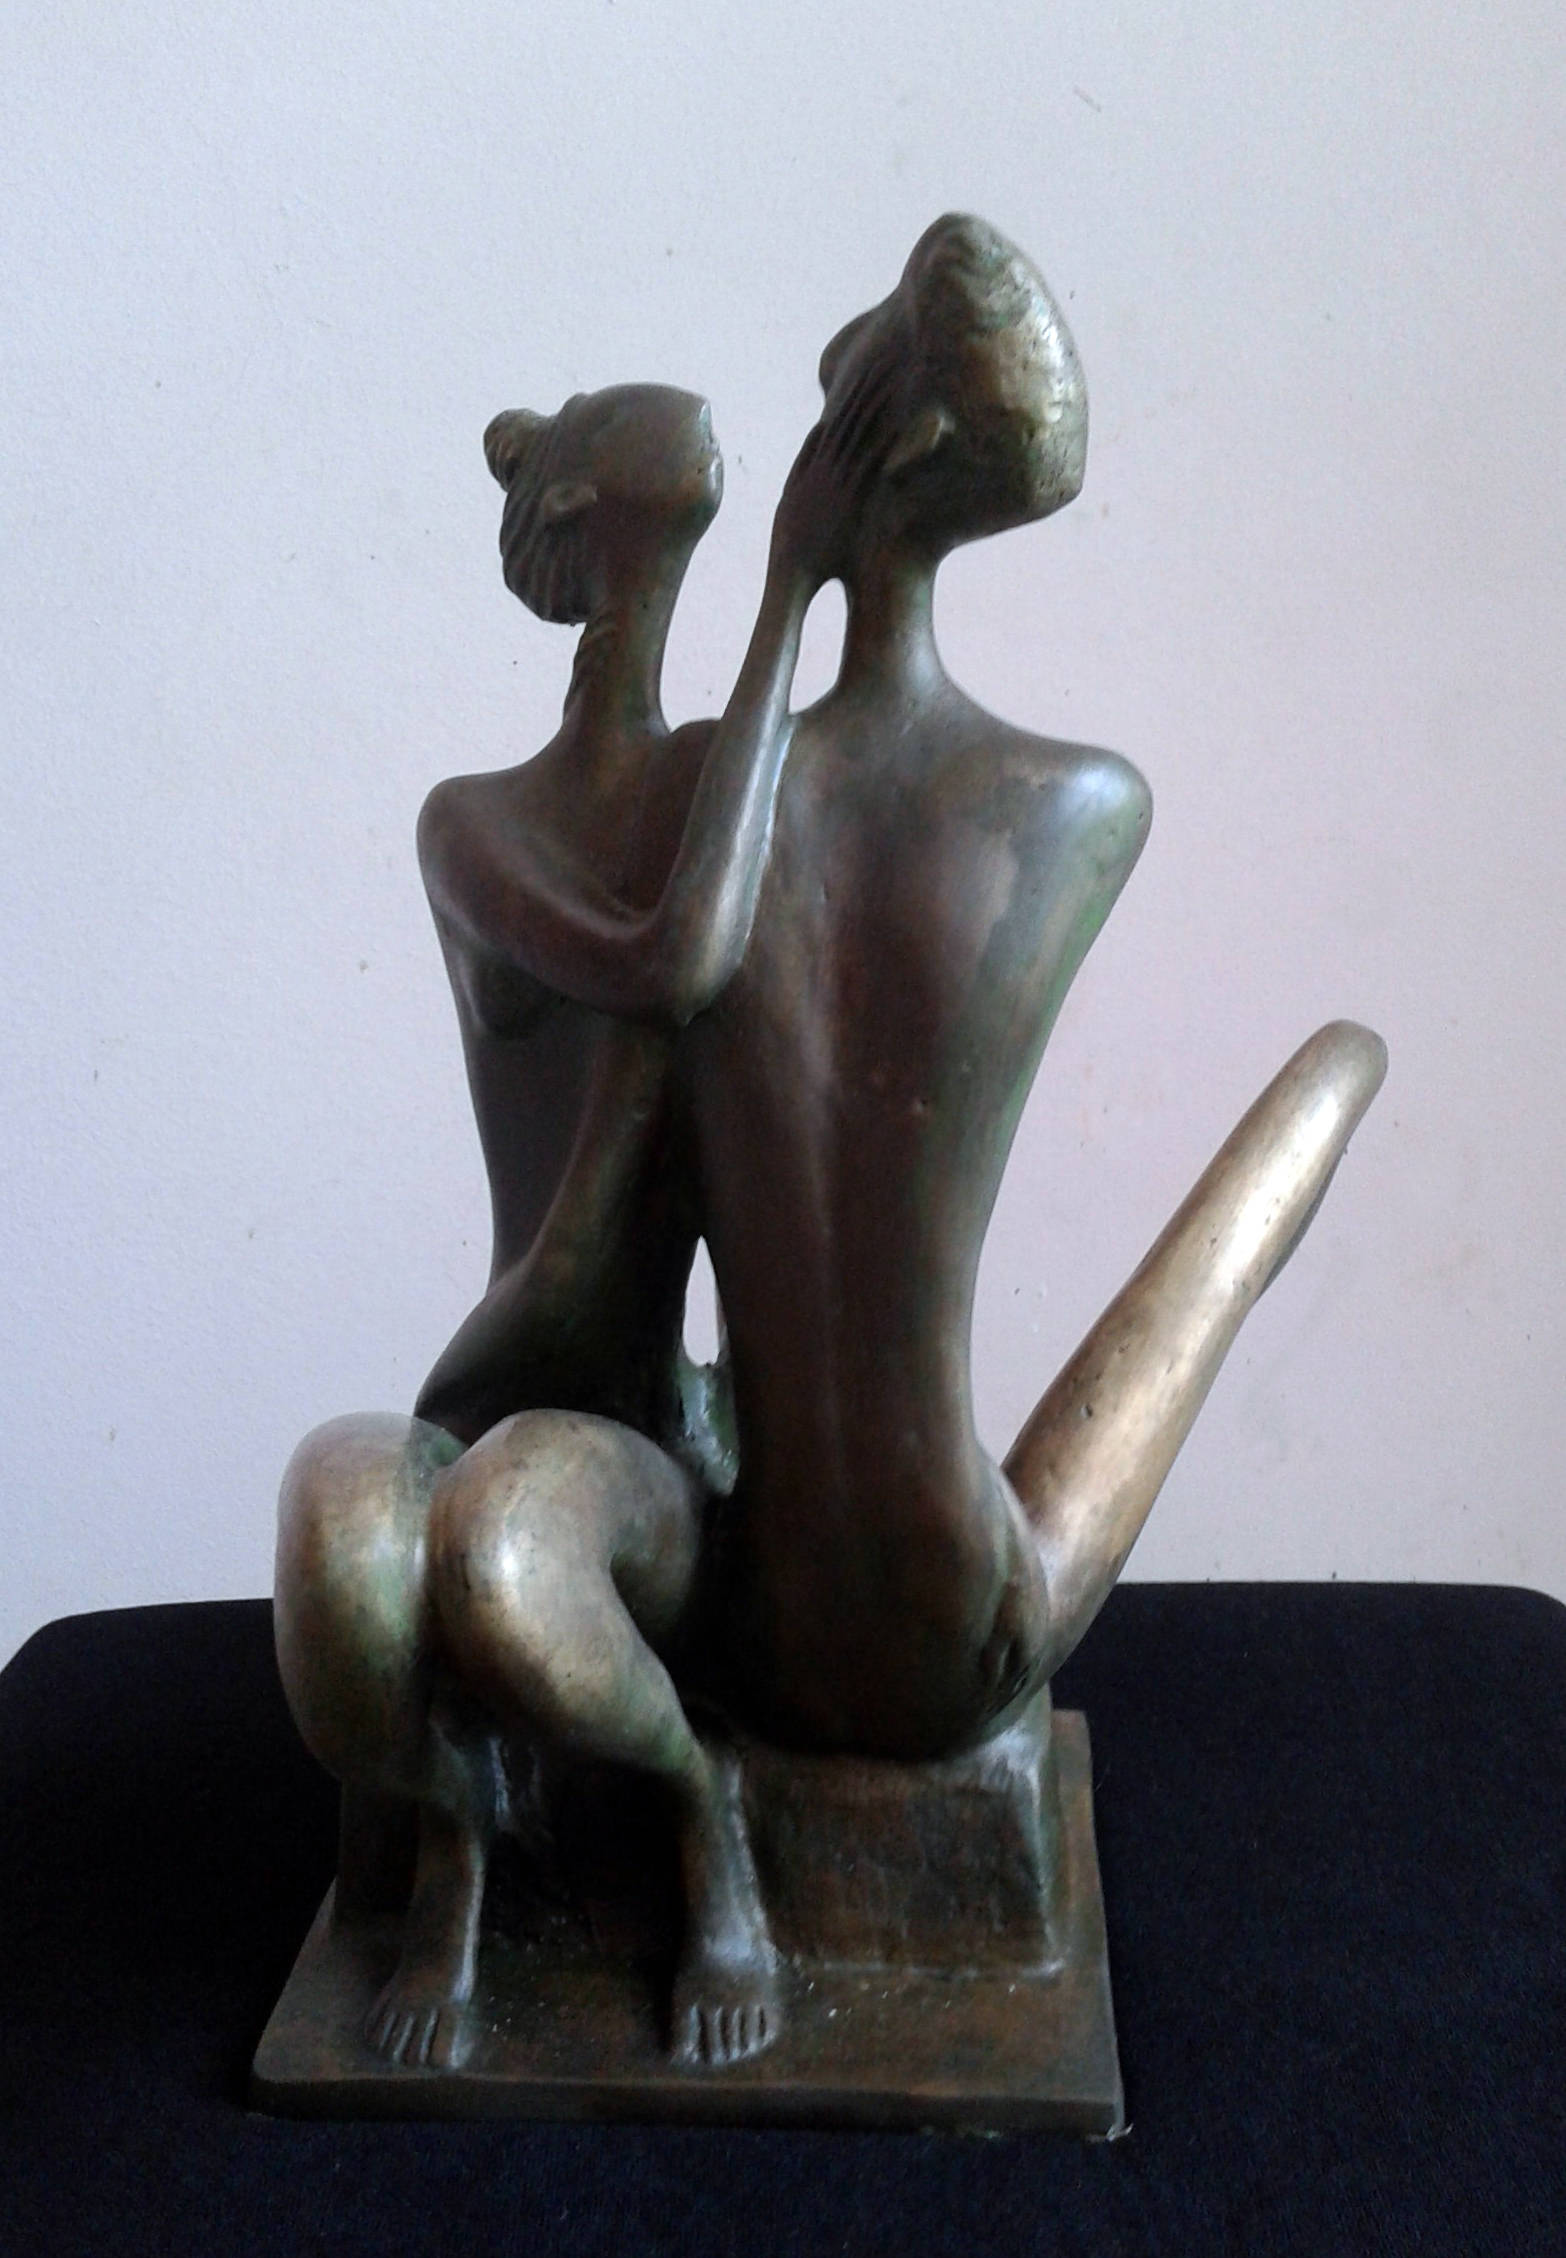 My Love Brass Unique Sculpture 2013 year 30x25x20 cm 9000$